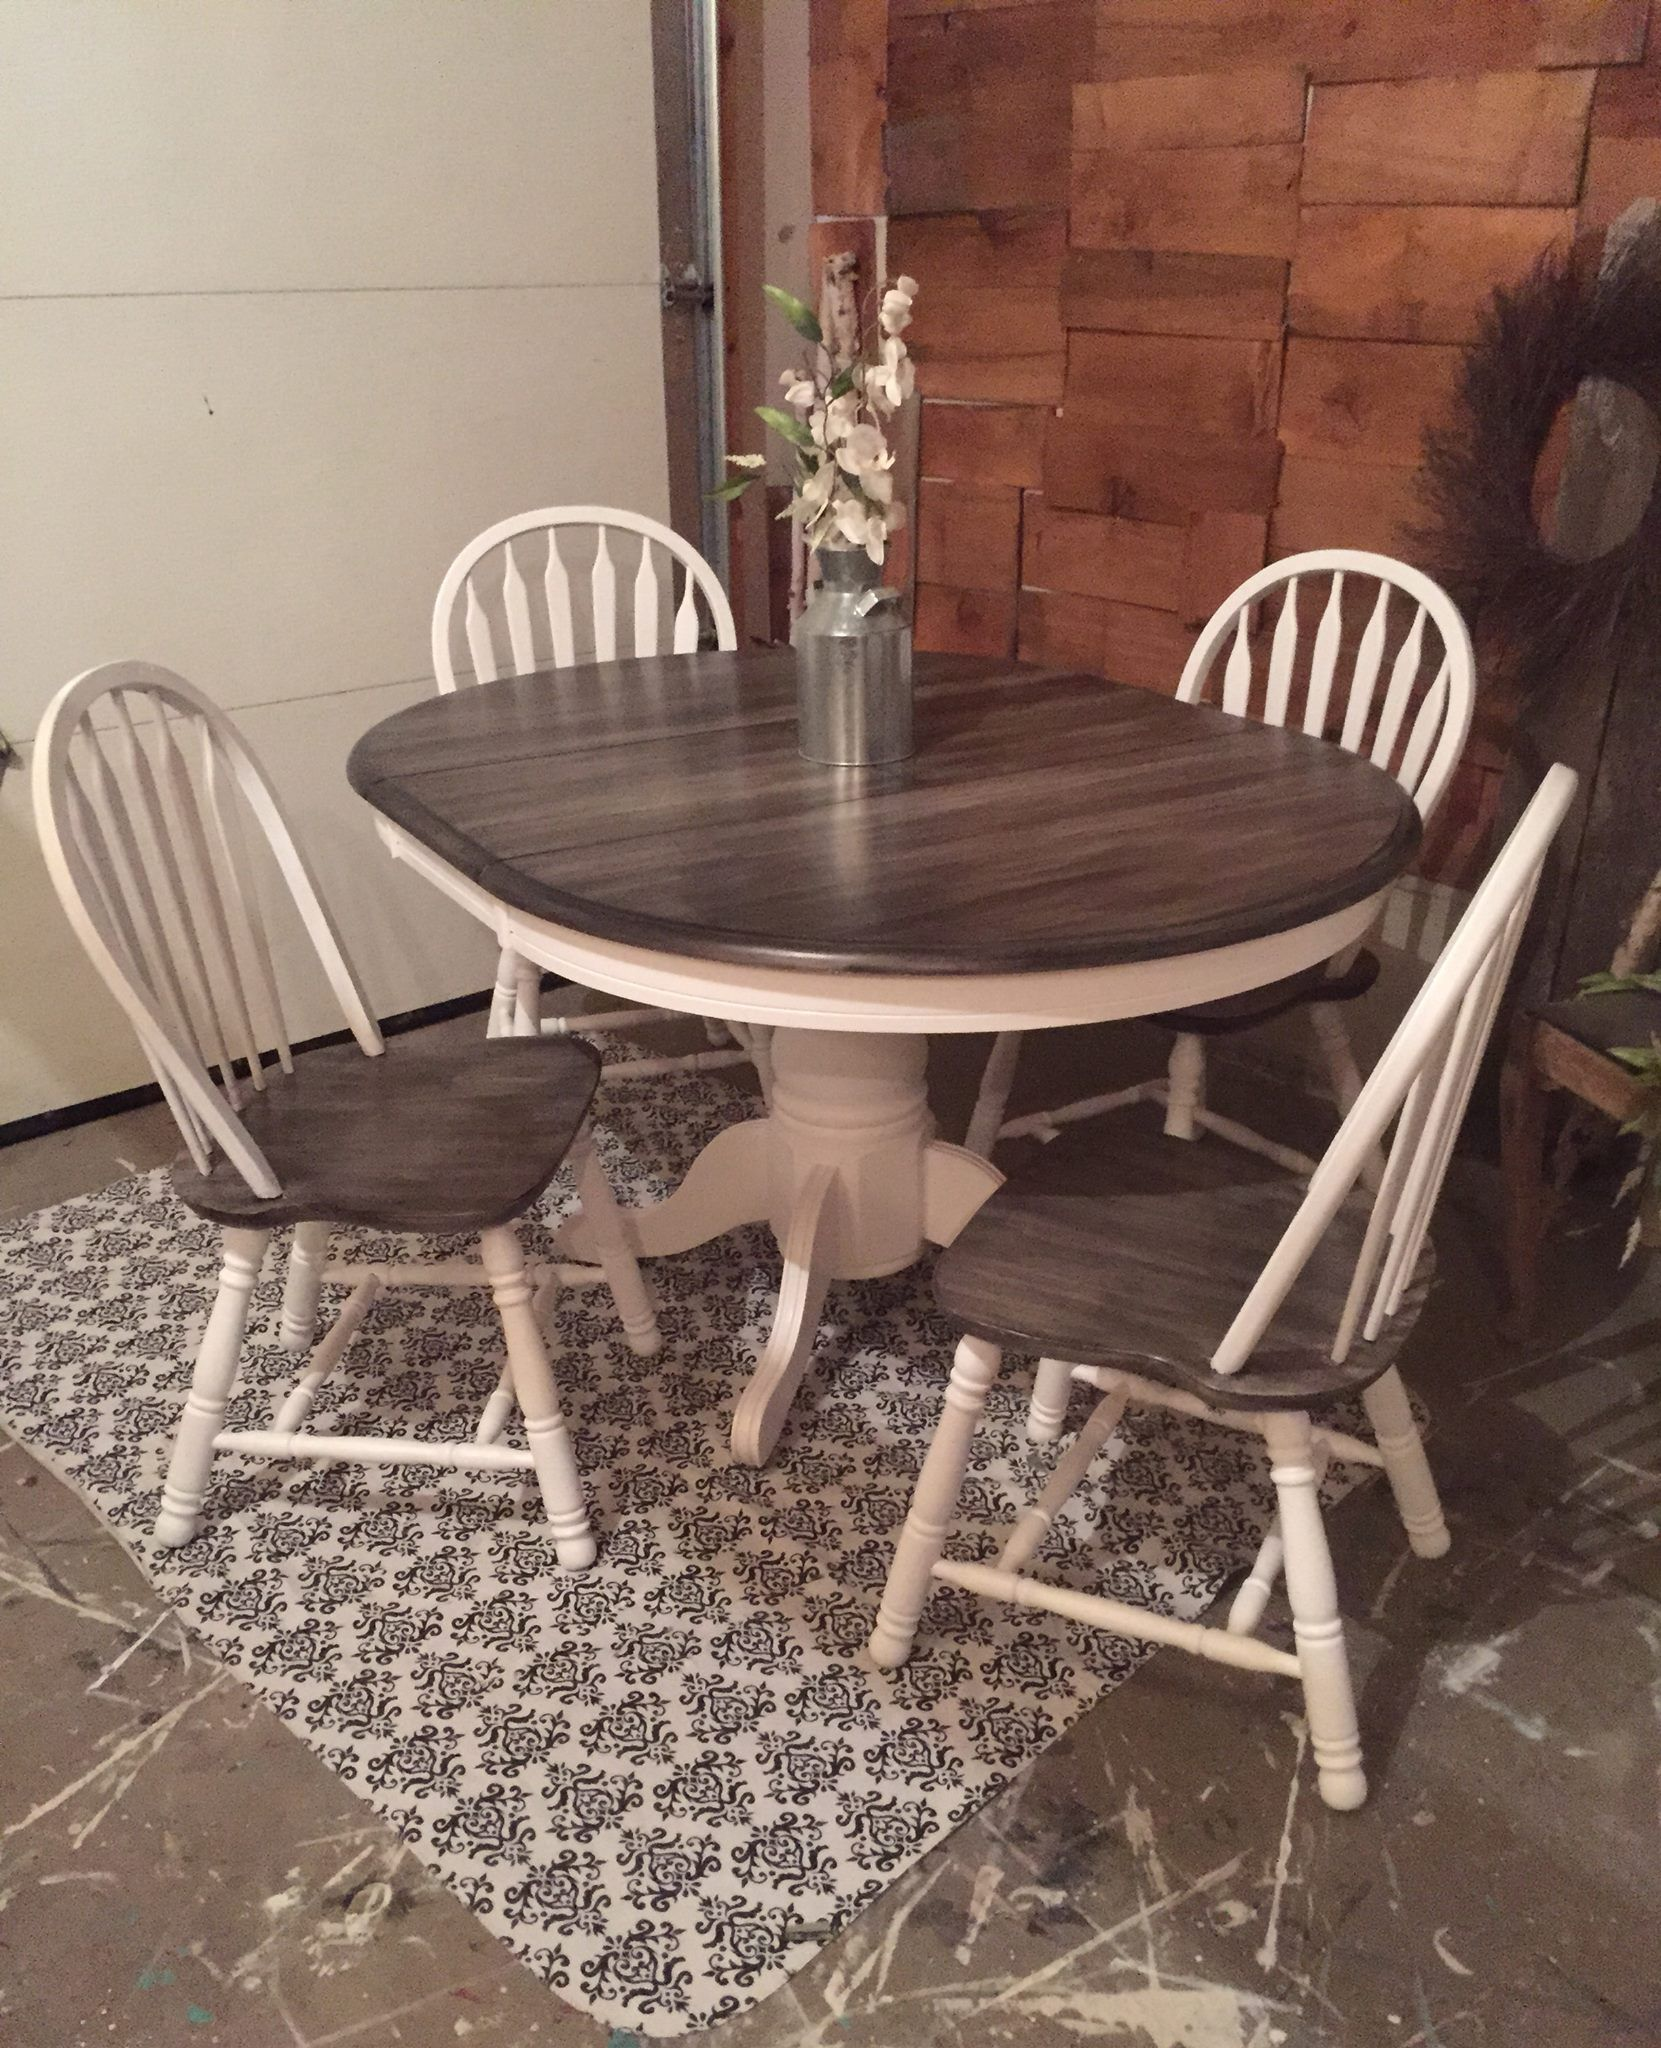 From simple Oak Table and Chairs to a Decorative Rustic Dining Set. This charming set & From simple Oak Table and Chairs to a Decorative Rustic Dining Set ...